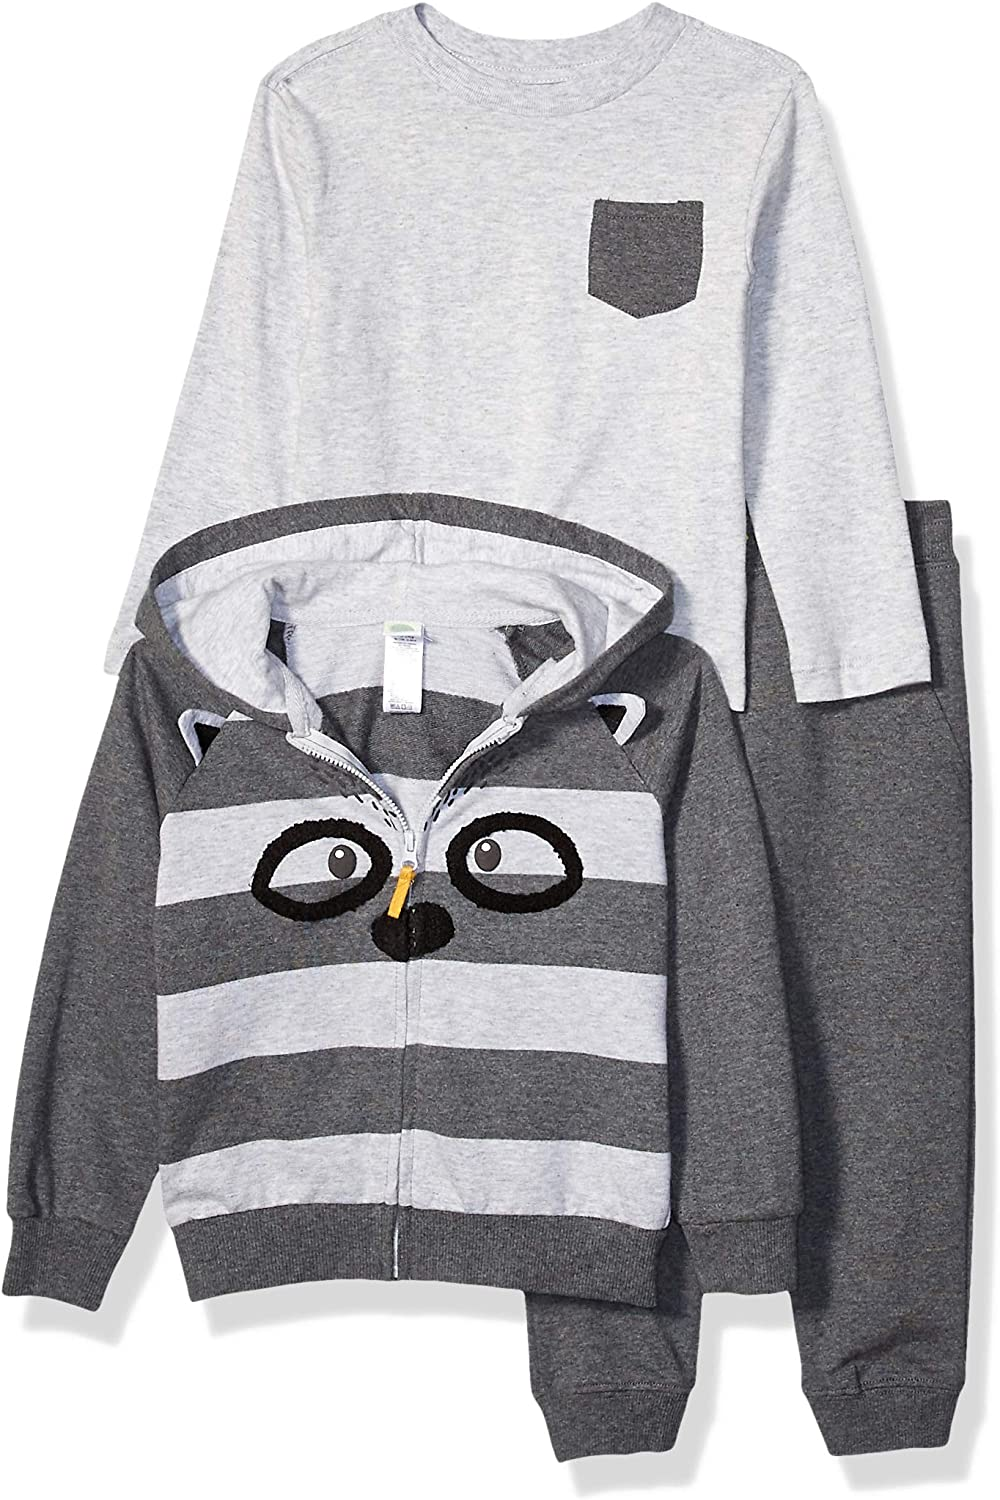 Little Me Boys' Toddler 3pc Hoodie Sets